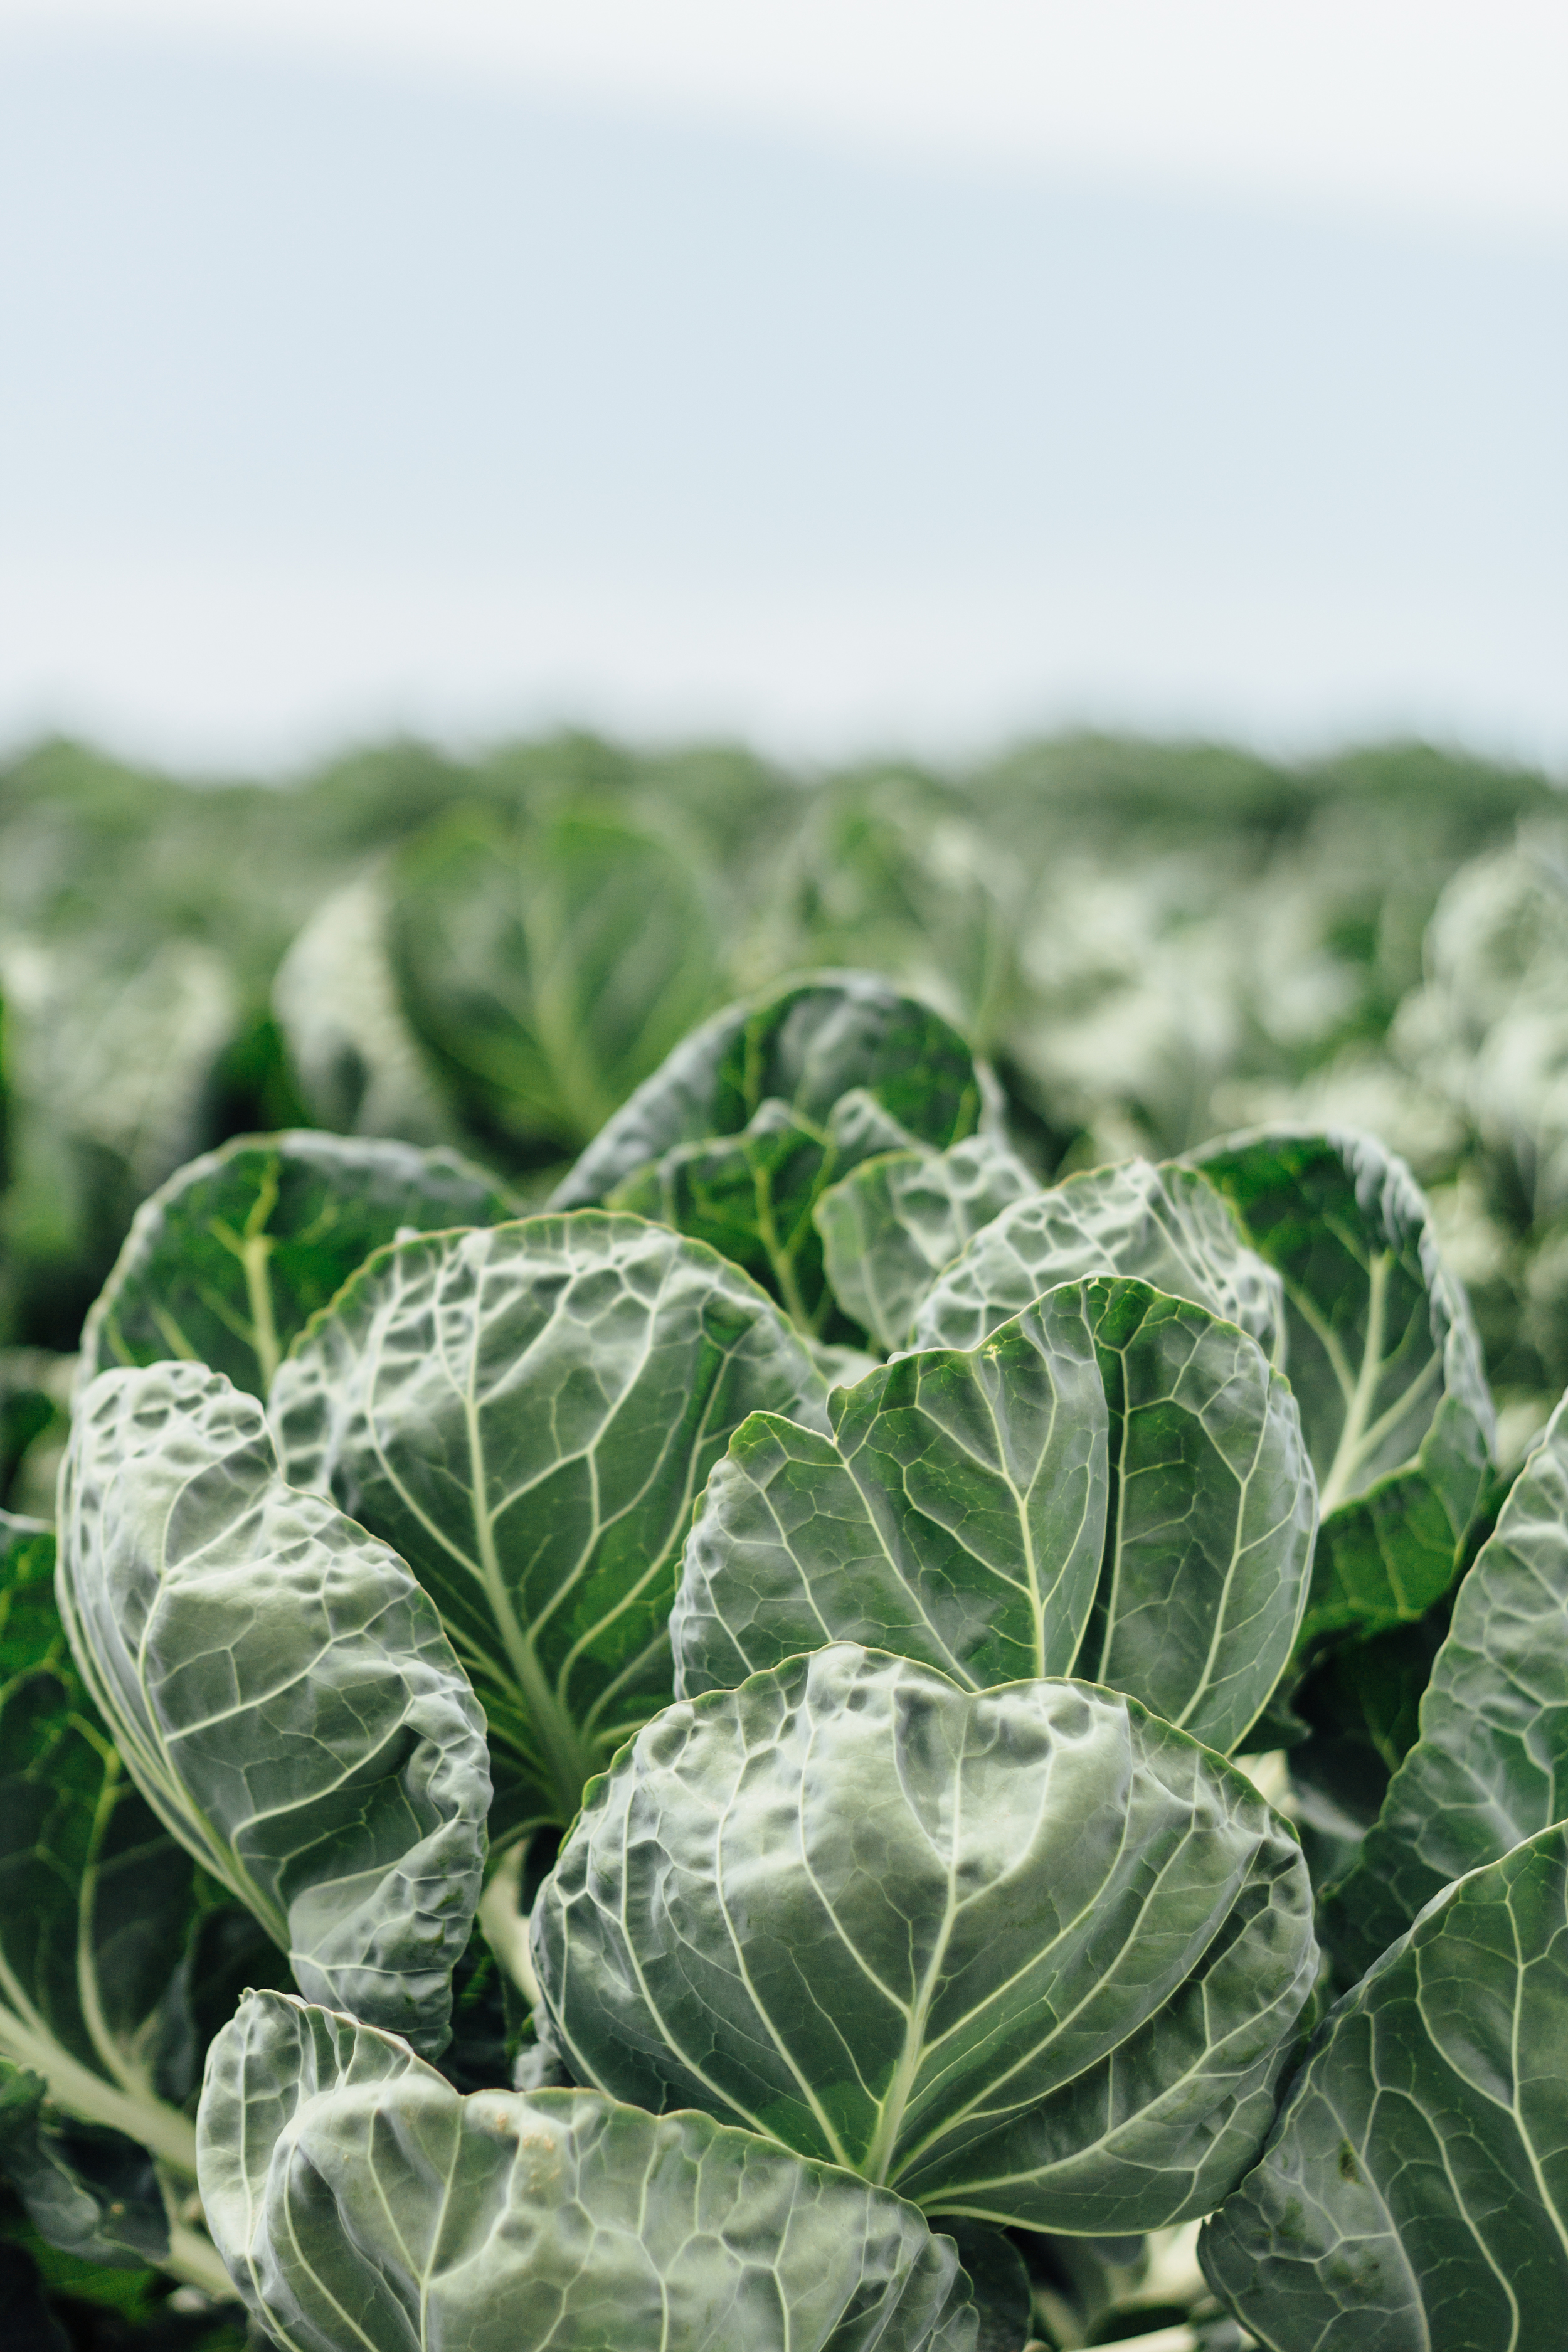 Cabbage Views by Catherine Alyce